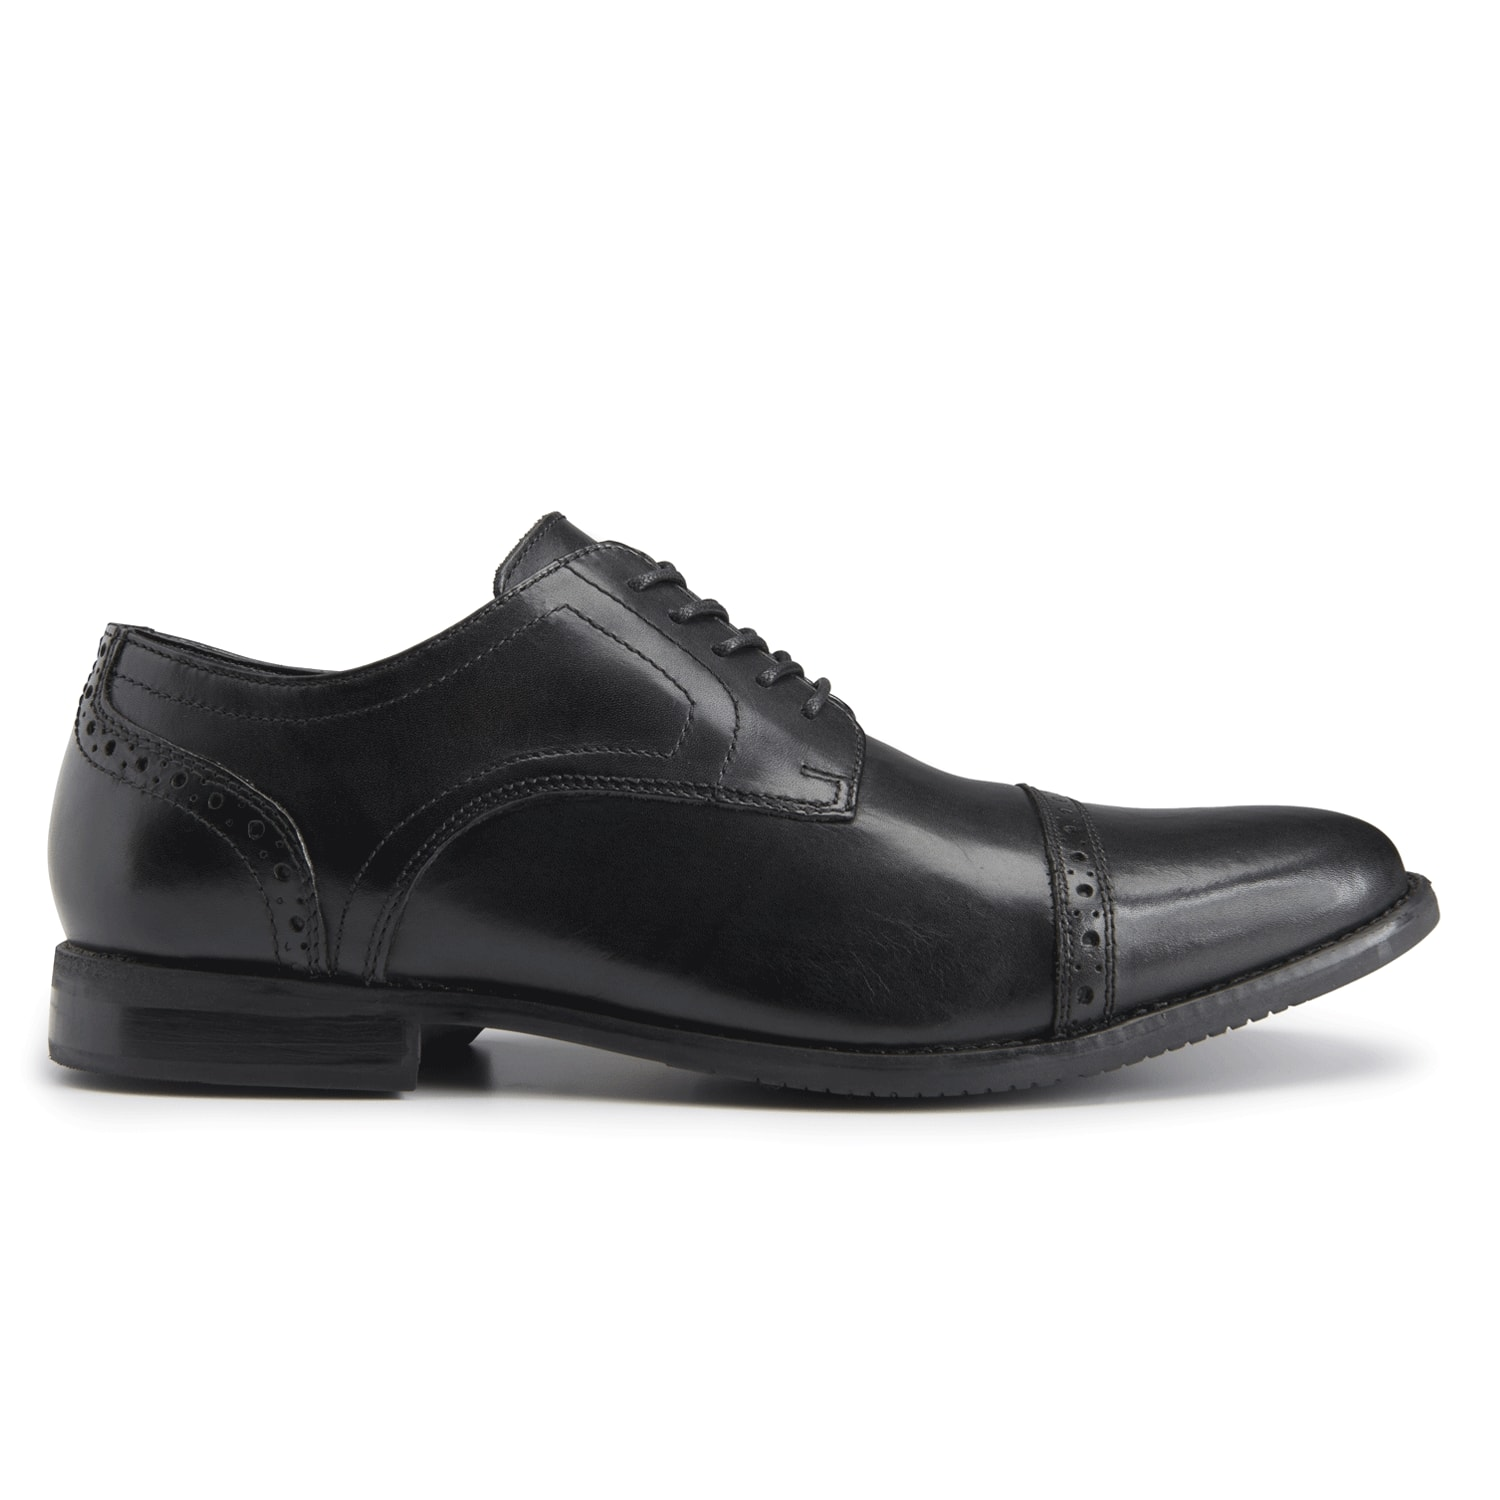 Rockport: Men's Style Purpose Cap Toe $48.99, Women's Total Motion PInk Leopard Pointed Toe Pump $27.99 & More + Free S/H w/Account